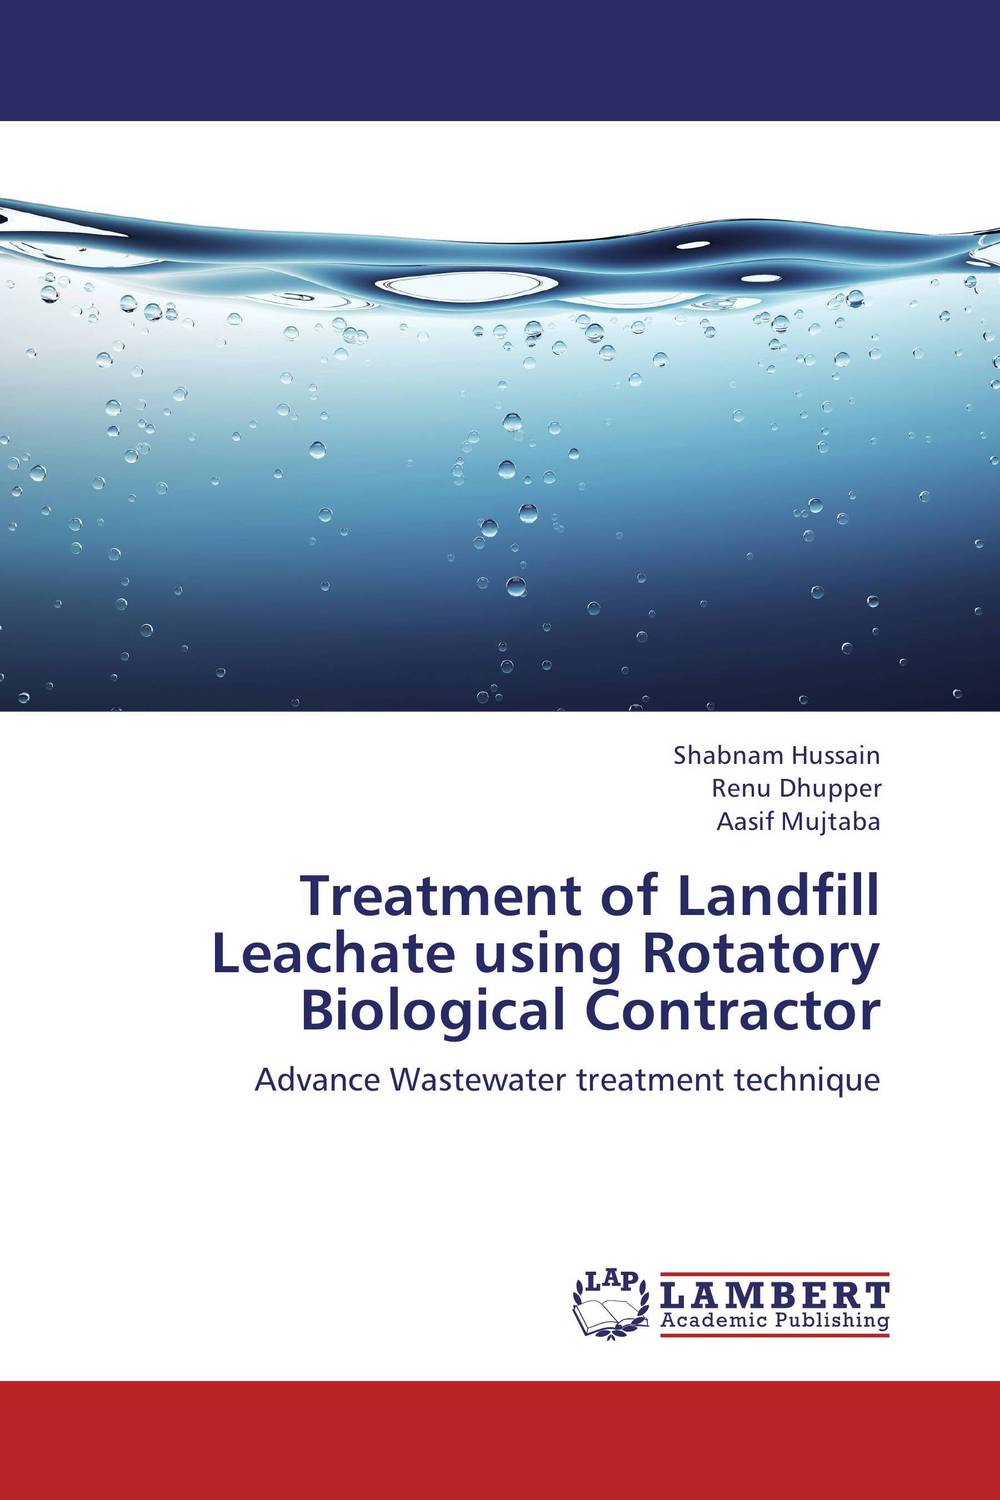 Treatment of Landfill Leachate using Rotatory Biological Contractor milton j blake b evans v a good turn of phrase advanced practice in phrasal verbs and prepositional phrases